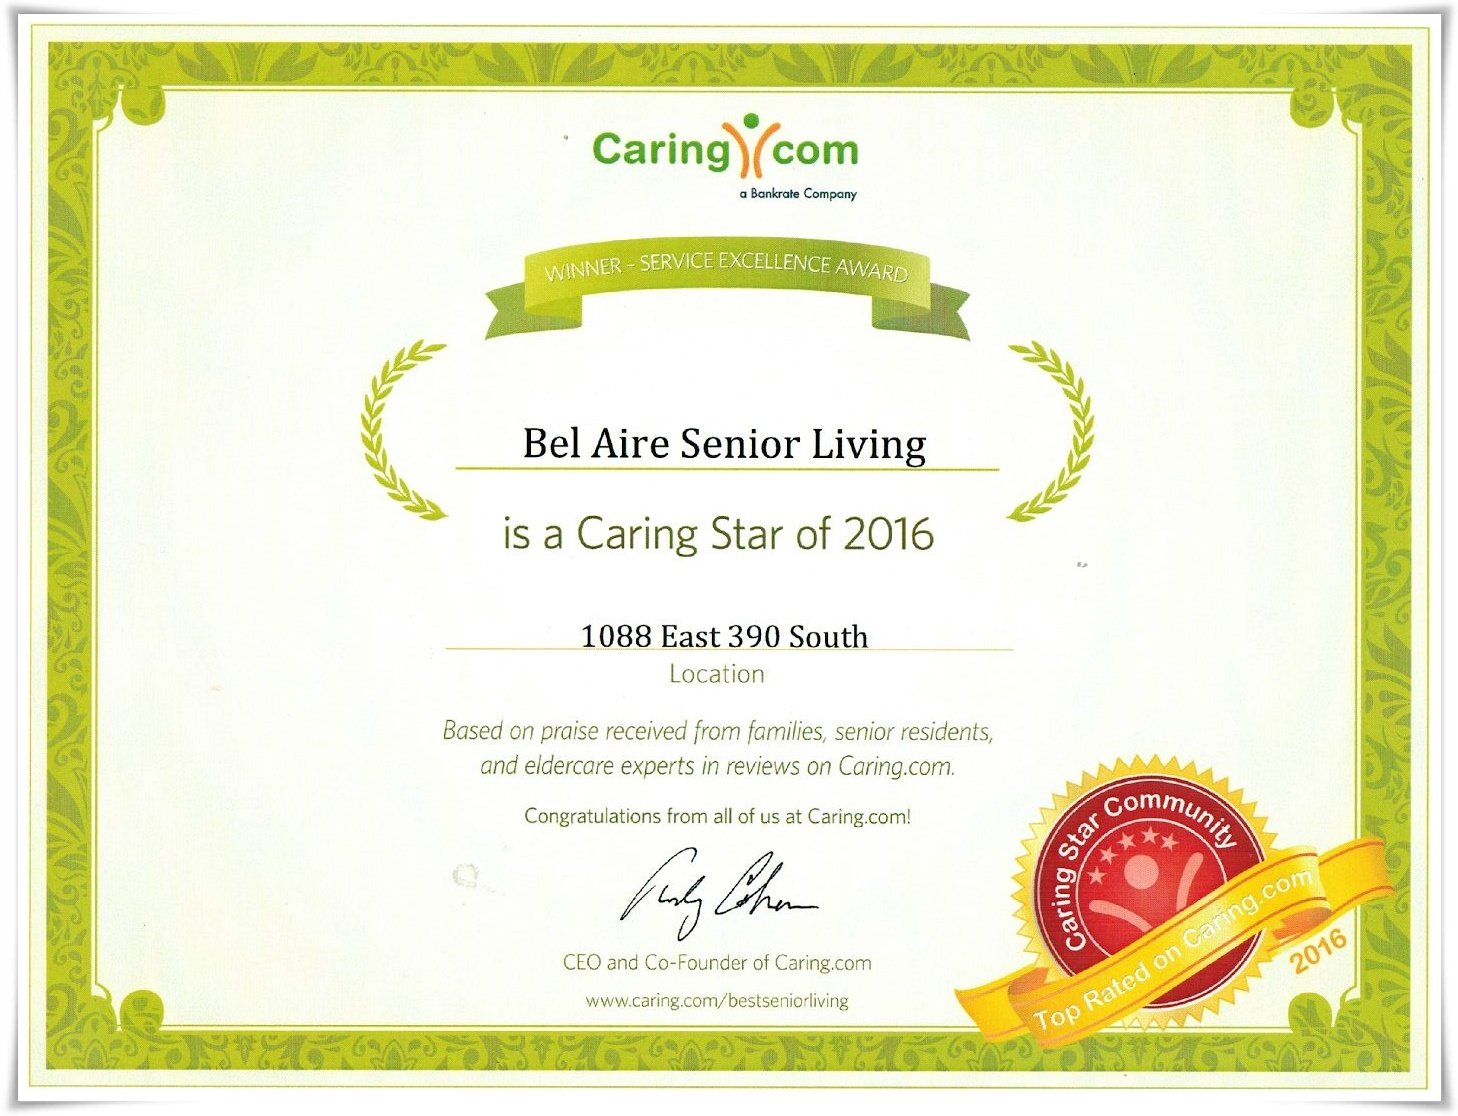 Caring-Star-2016-Award.jpg